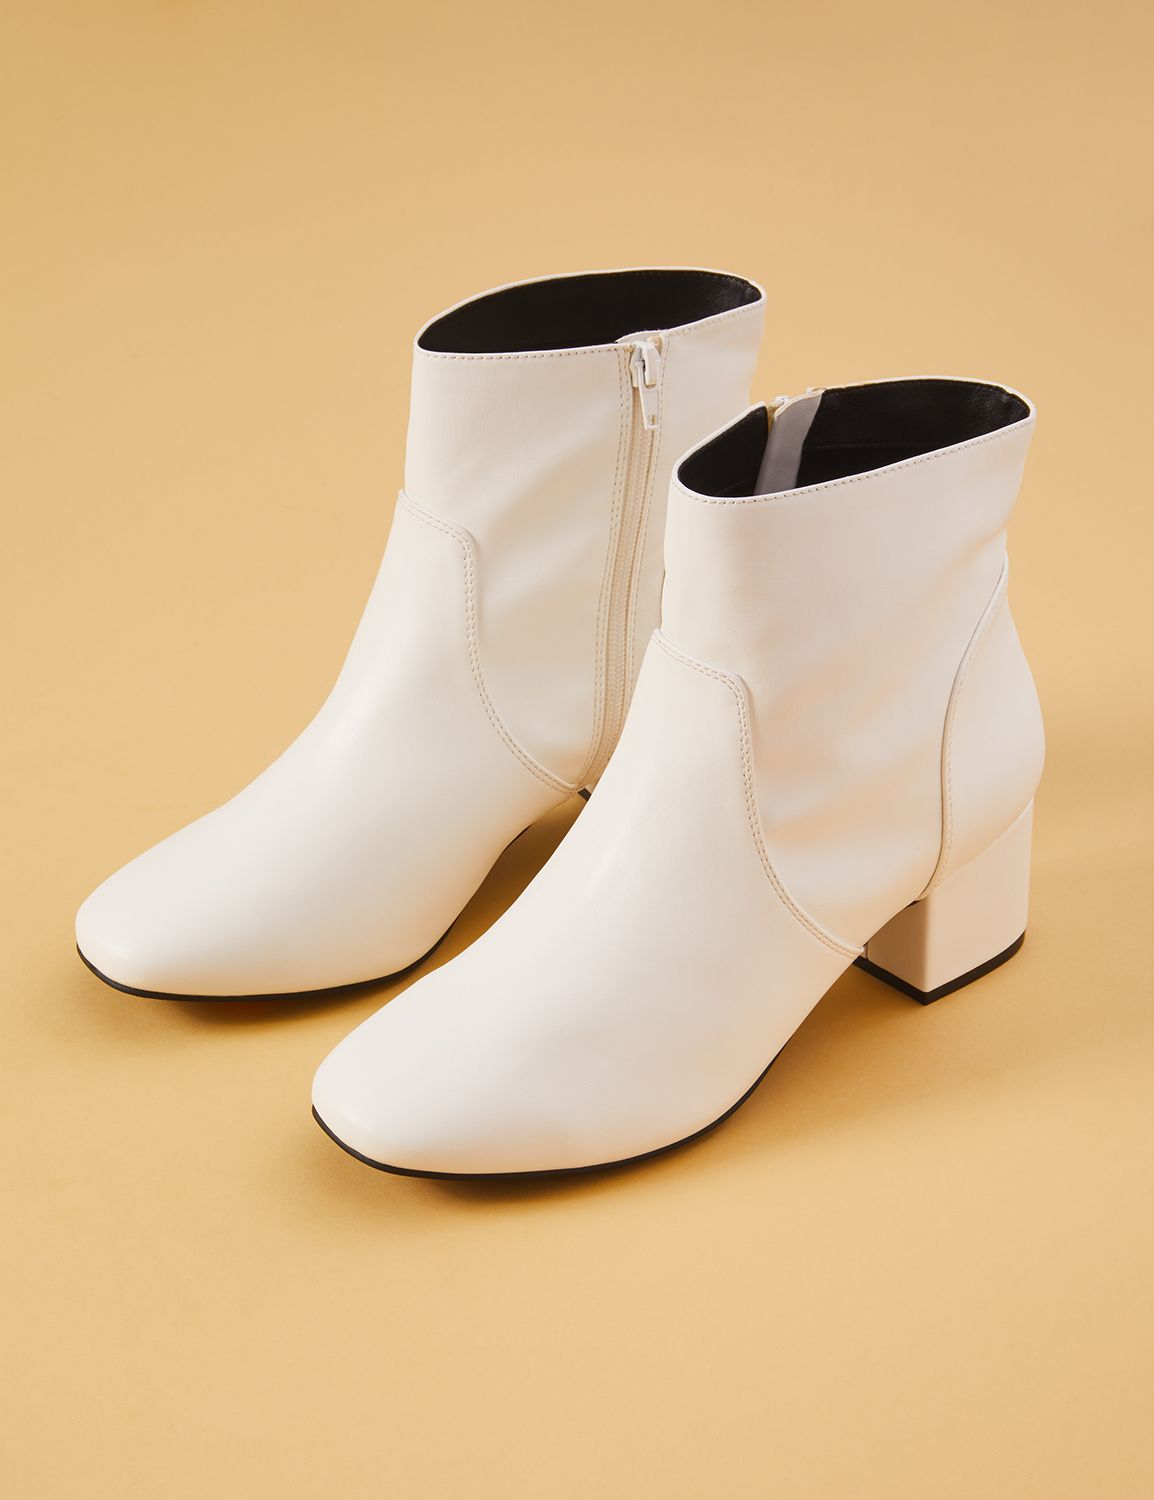 Vintage Boots- Winter Rain and Snow Boots Lane Bryant Womens White Faux Leather Ankle Boot 12W White $62.99 AT vintagedancer.com